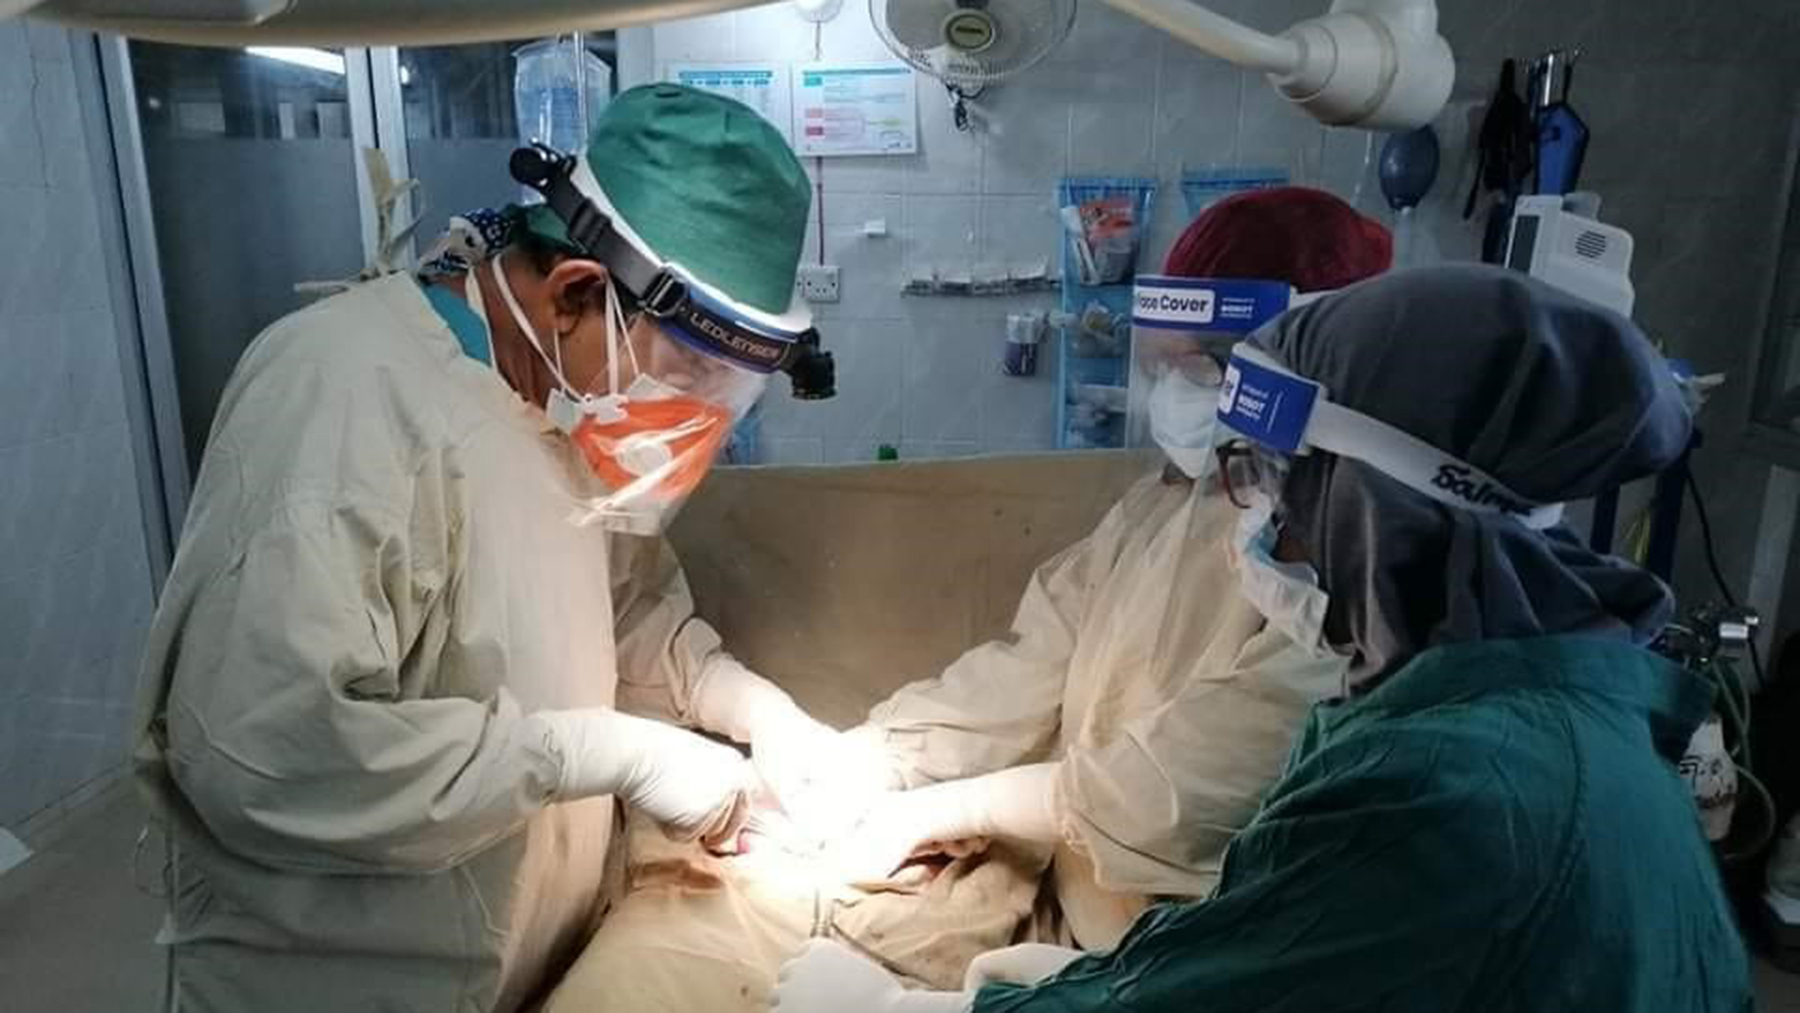 Health care workers at HOPE for Bangladesh's field hospital conduct a surgery. (Photo courtesy of HOPE for Bangladesh)